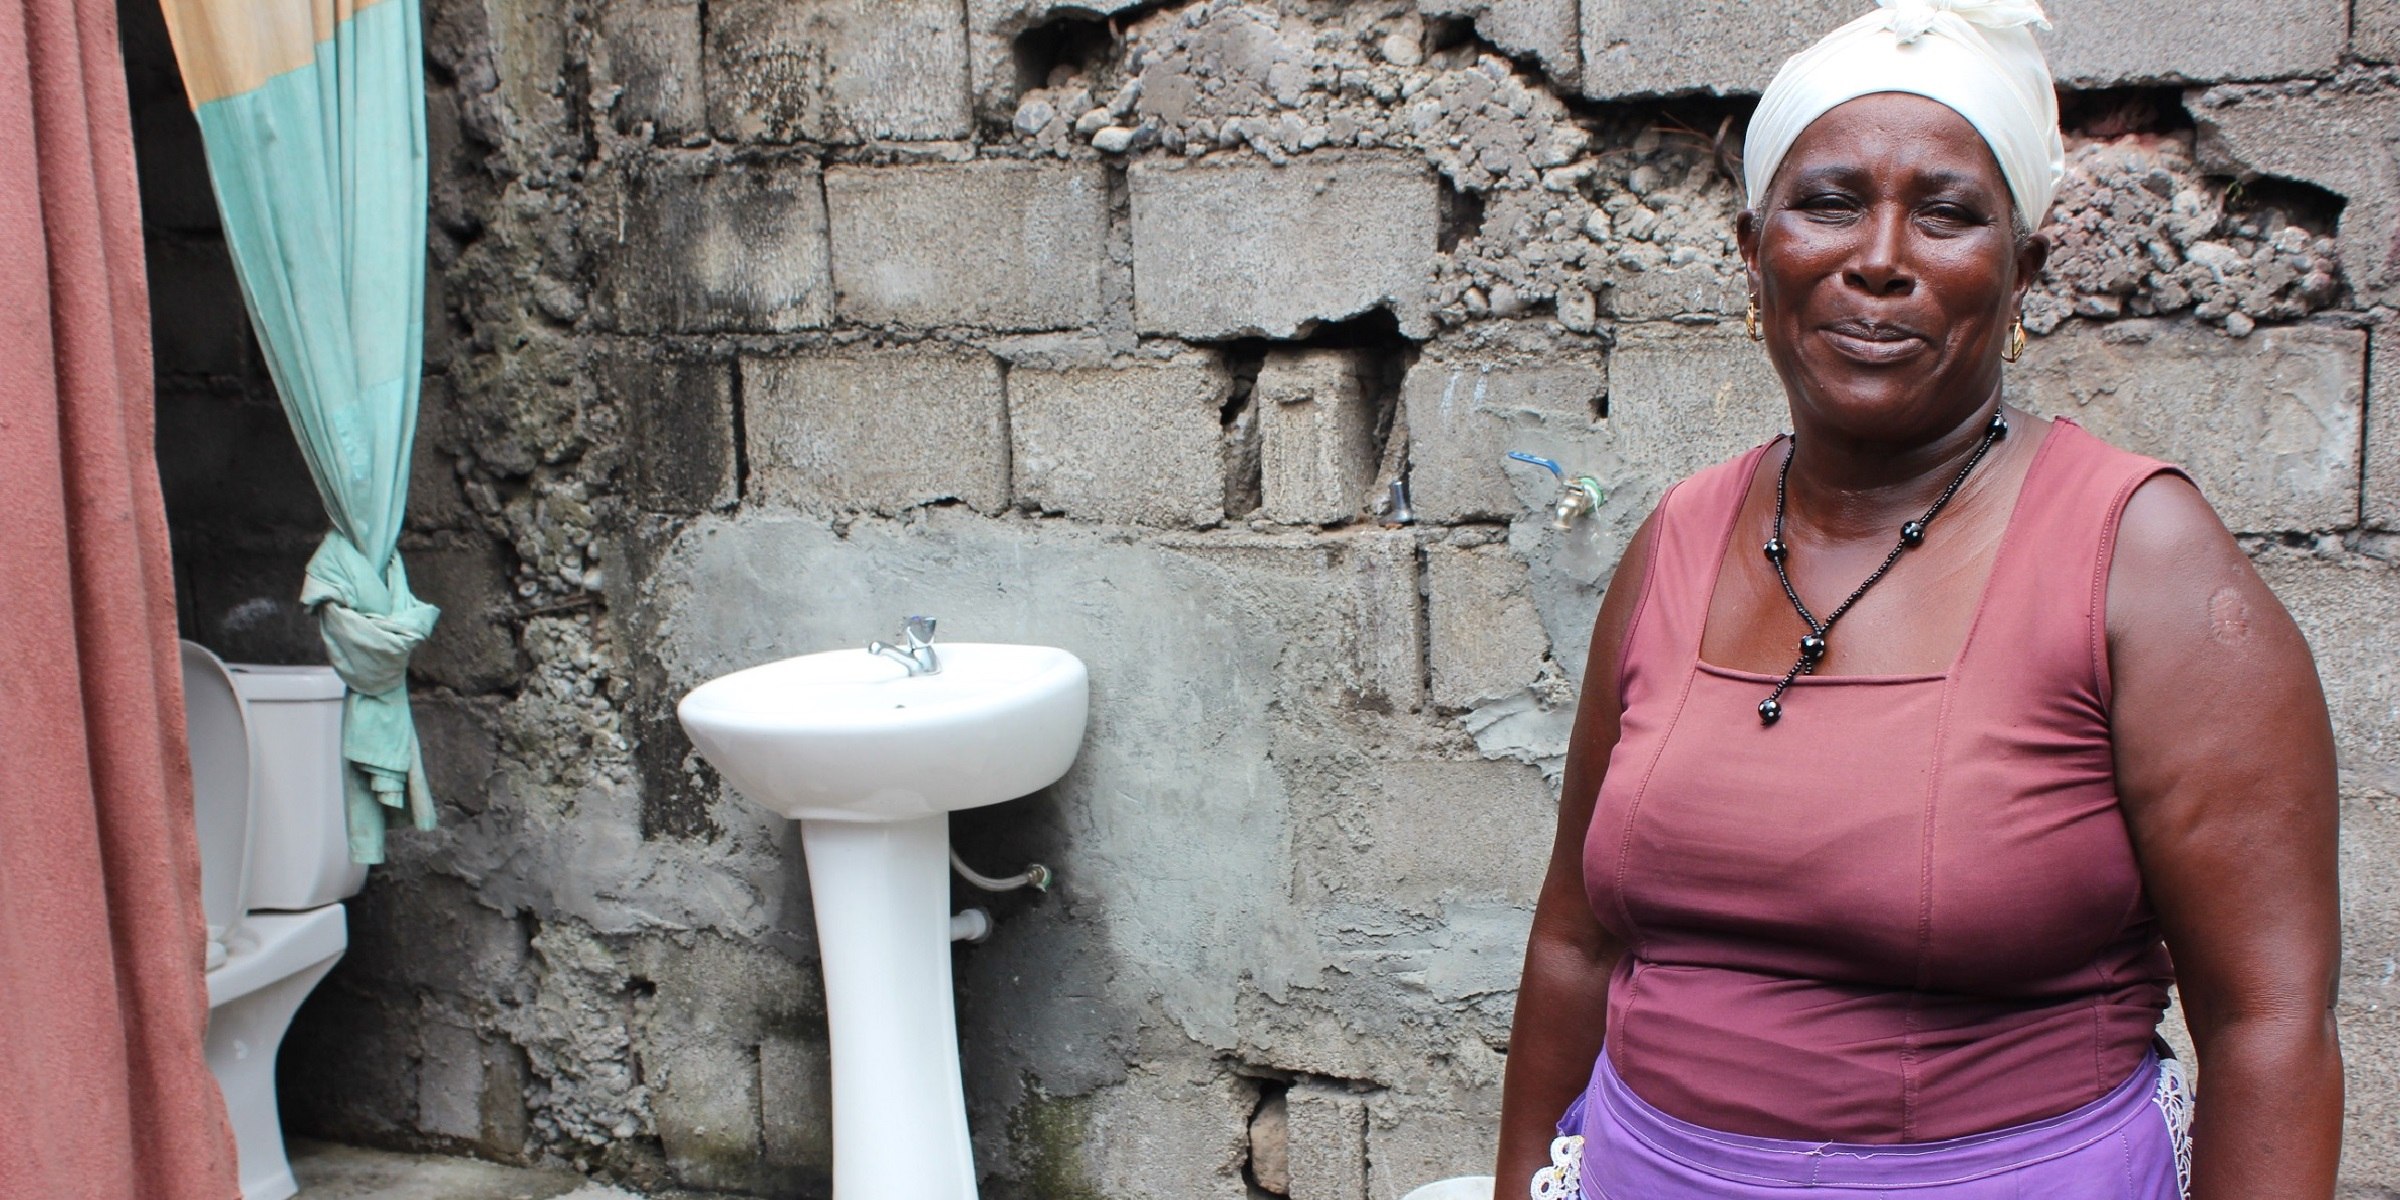 Celestina, an MCC beneficiary in Cabo Verde, stands next to her home where she now has indoor plumbing thanks to MCC's compact.